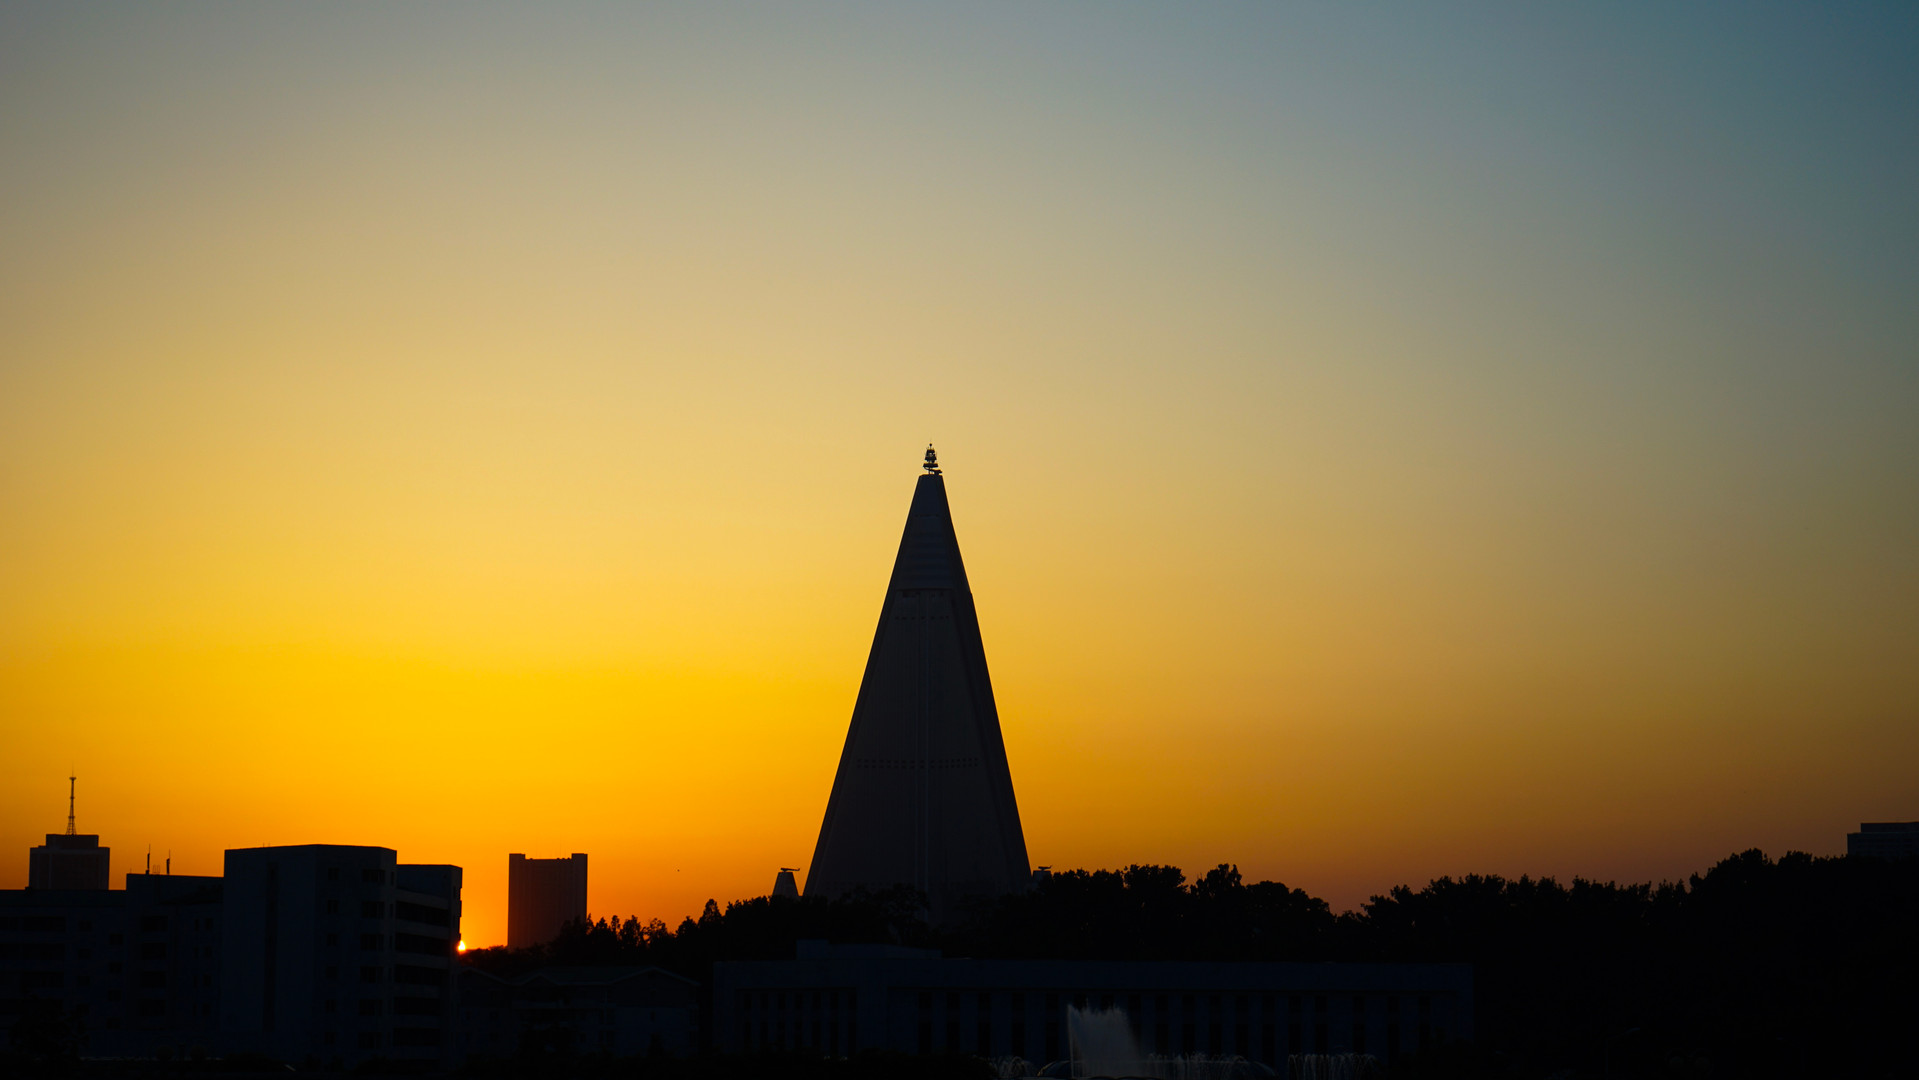 Sunset in NK